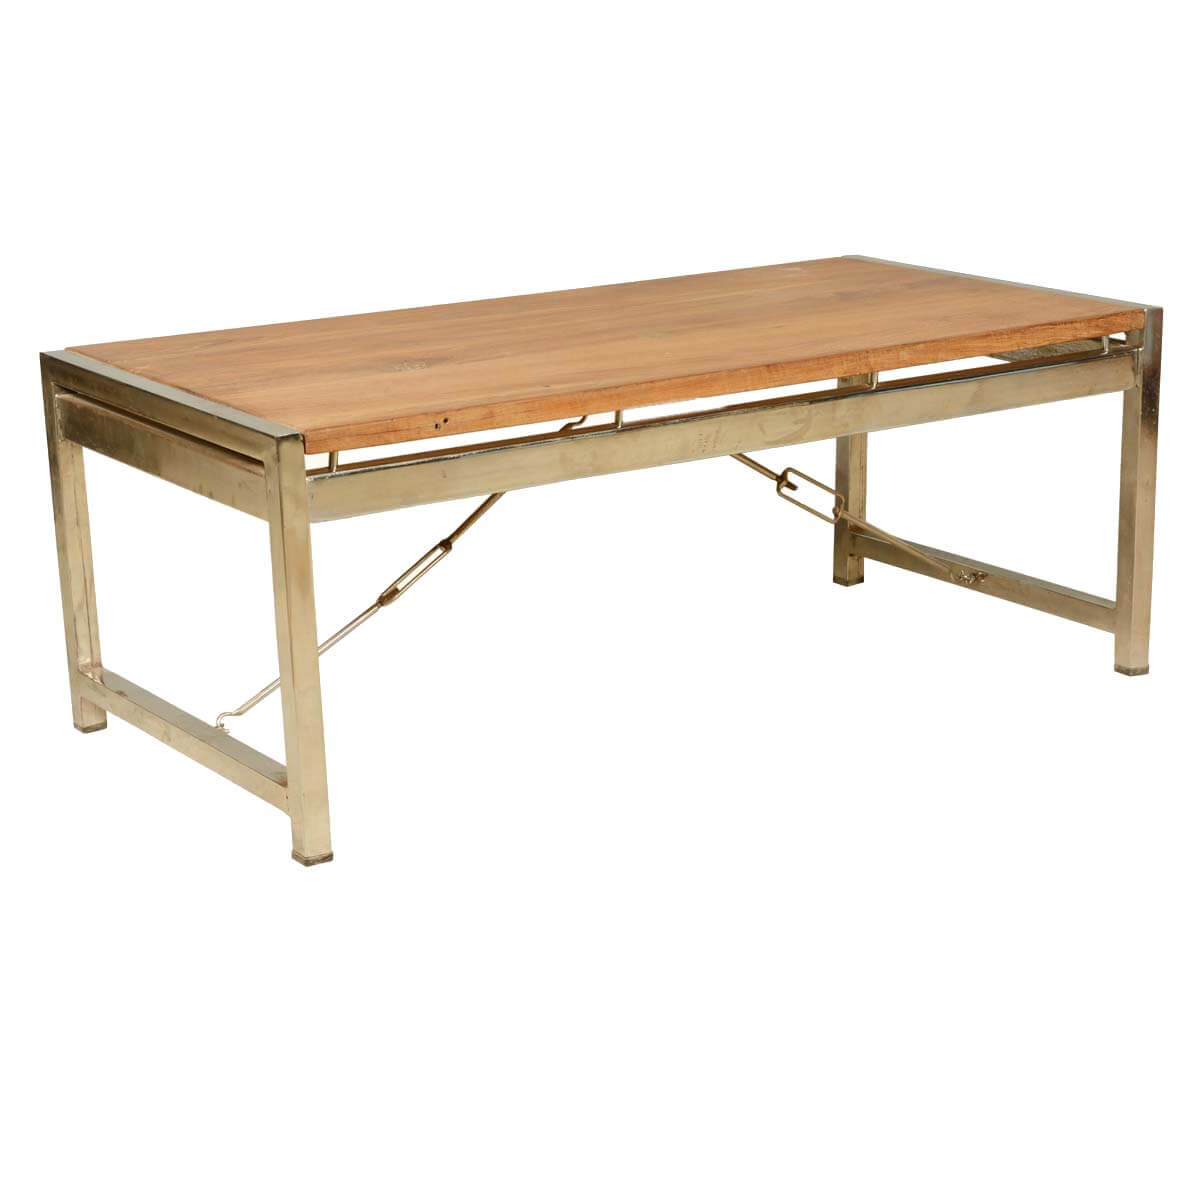 Modern Industrial Fusion Solid Wood & Iron Rustic Coffee Table